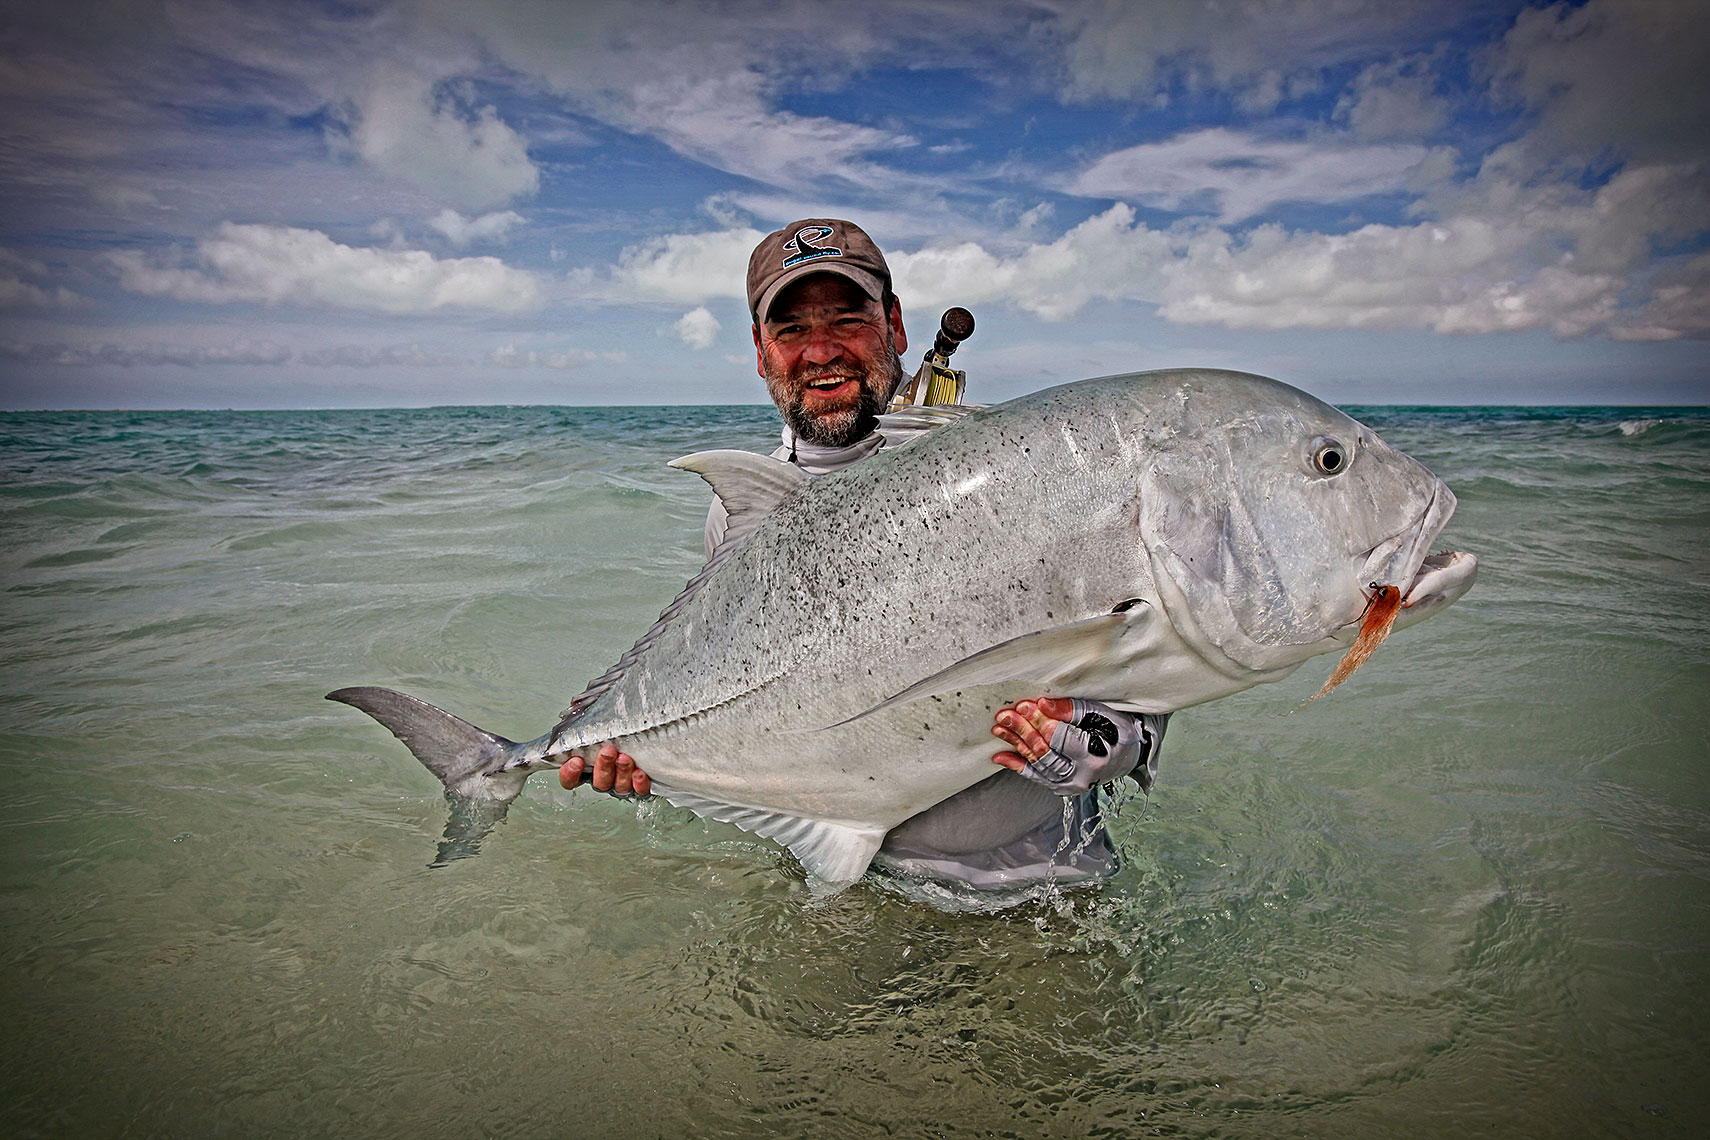 Huge Giant Trevally